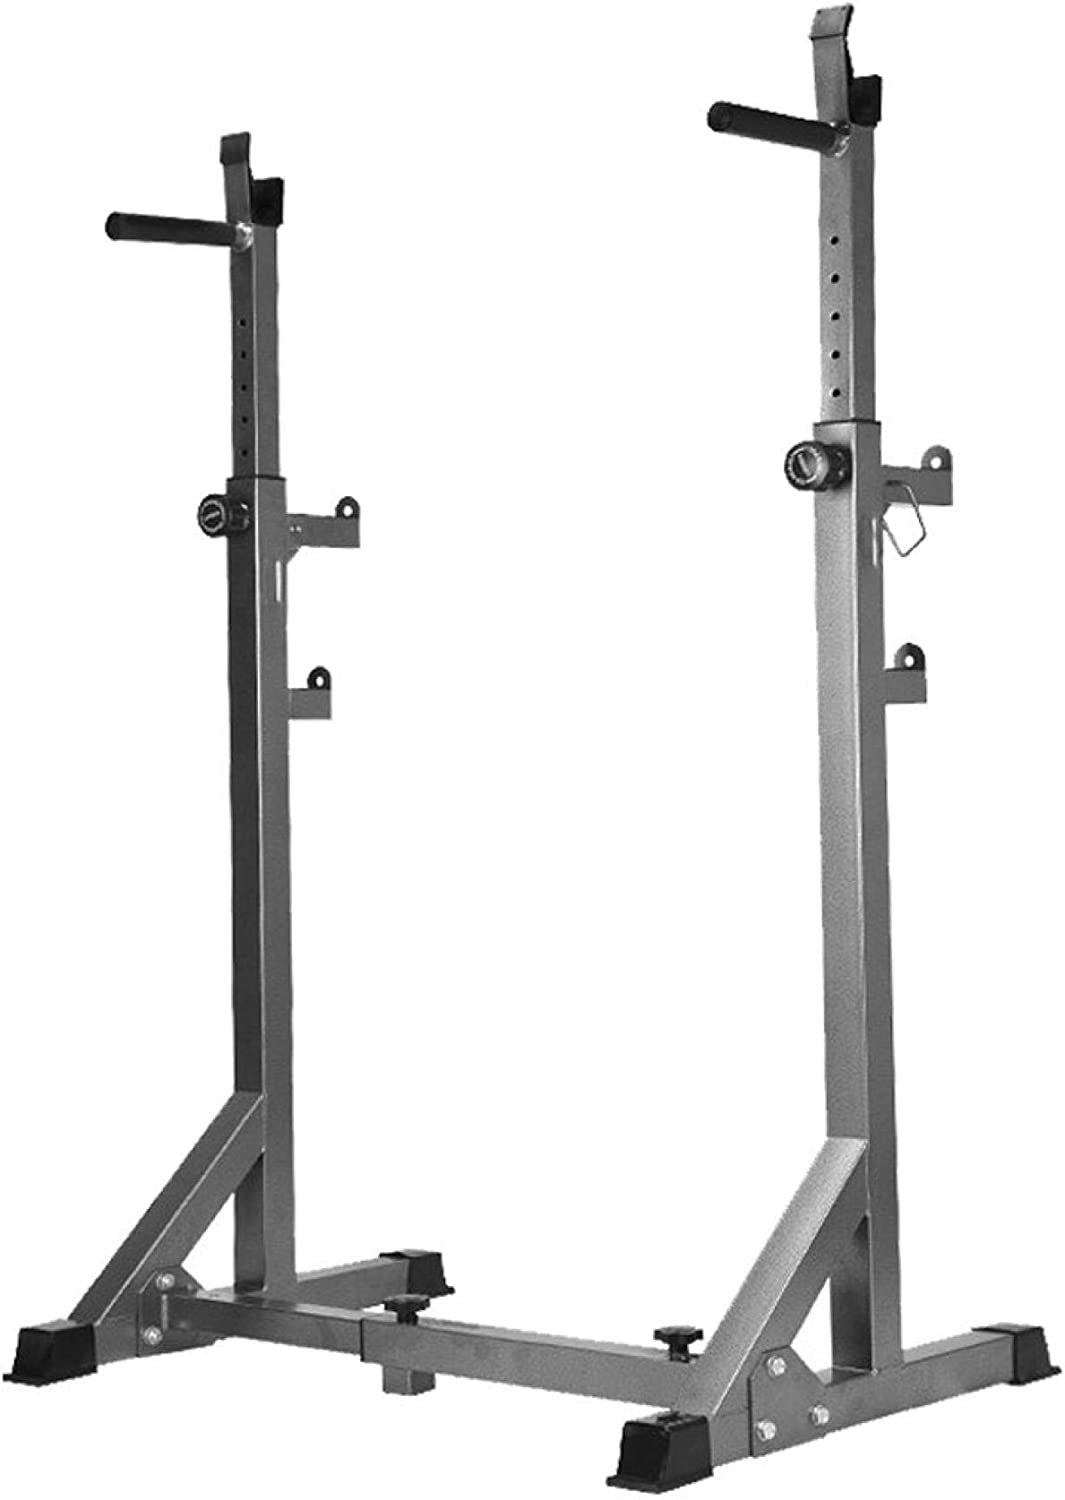 Boddenly Double Height Adjustable Squat Stand Barbell Rack,Barbell Rack Dip Stand Barbell Stand Weight Lifting Rack for Gym Family Fitness,Easy to Store and Carry,Max Load 660Lbs